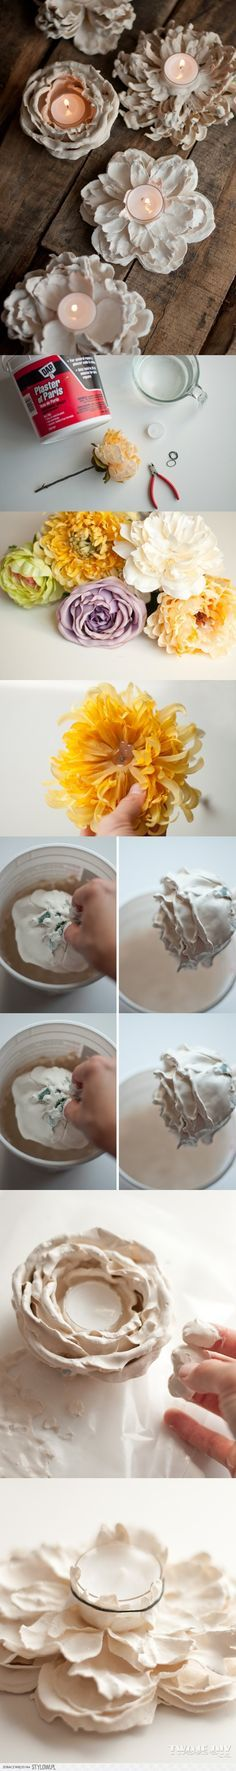 Beautiful DIY Candle Holders – Great Ideas & Tutorials for Special Occasions DIY Romantic Plaster Dipped Flower Votives. I can't believe how easy it is to make these beautiful flower votives at home. Tutorial via Diy Home Decor Projects, Diy Projects To Try, Crafts To Do, Home Crafts, Craft Projects, Arts And Crafts, Easy Home Decor, Decor Crafts, Diy Candle Holders